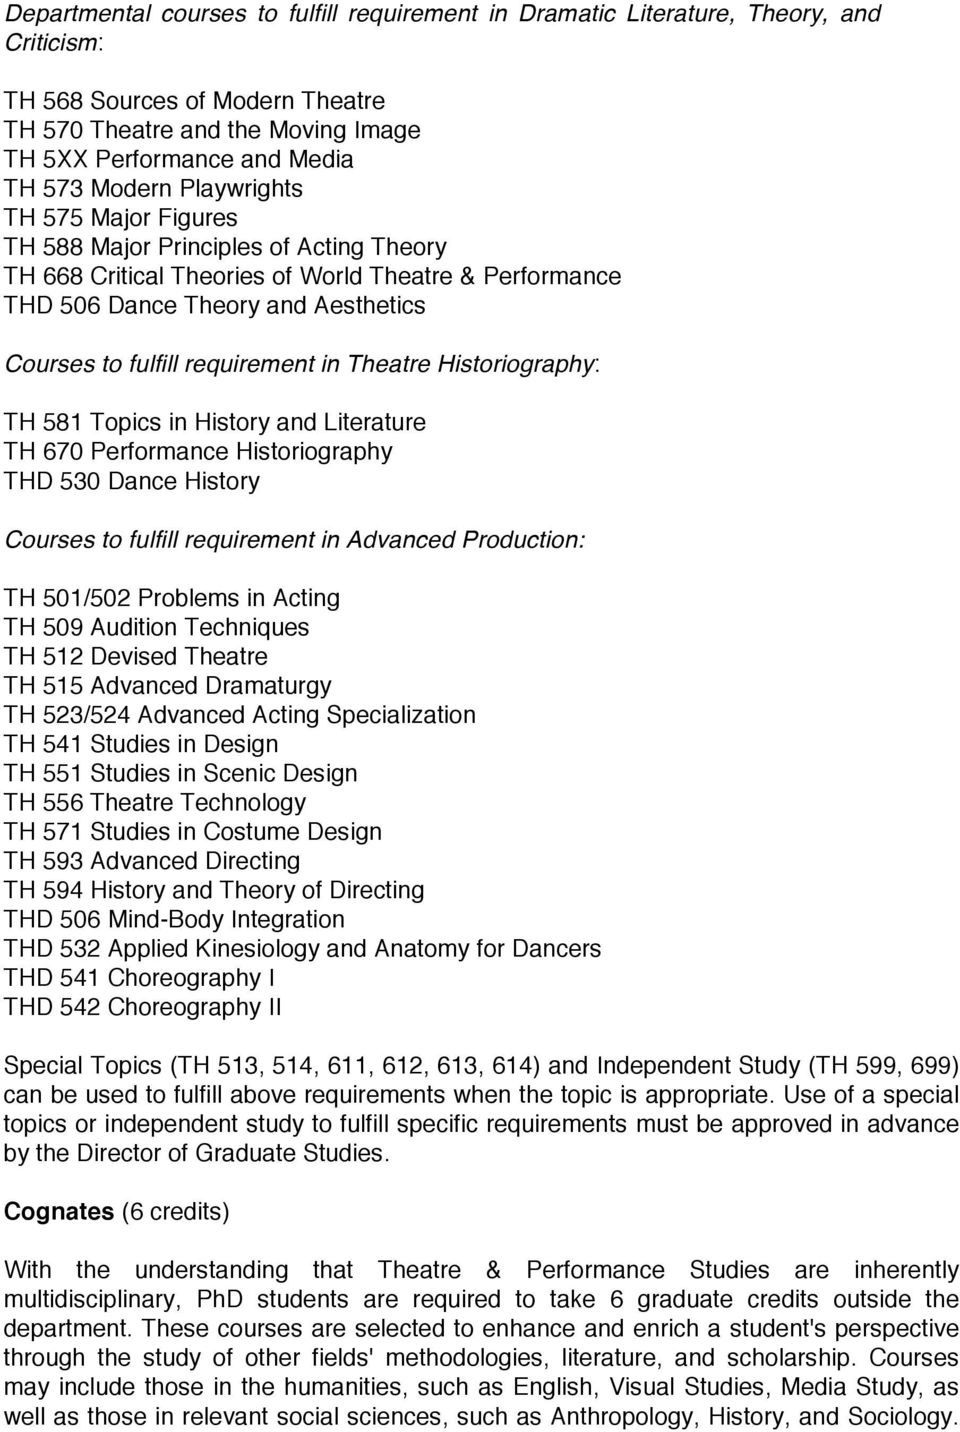 requirement in Theatre Historiography: TH 581 Topics in History and Literature TH 670 Performance Historiography THD 530 Dance History Courses to fulfill requirement in Advanced Production: TH